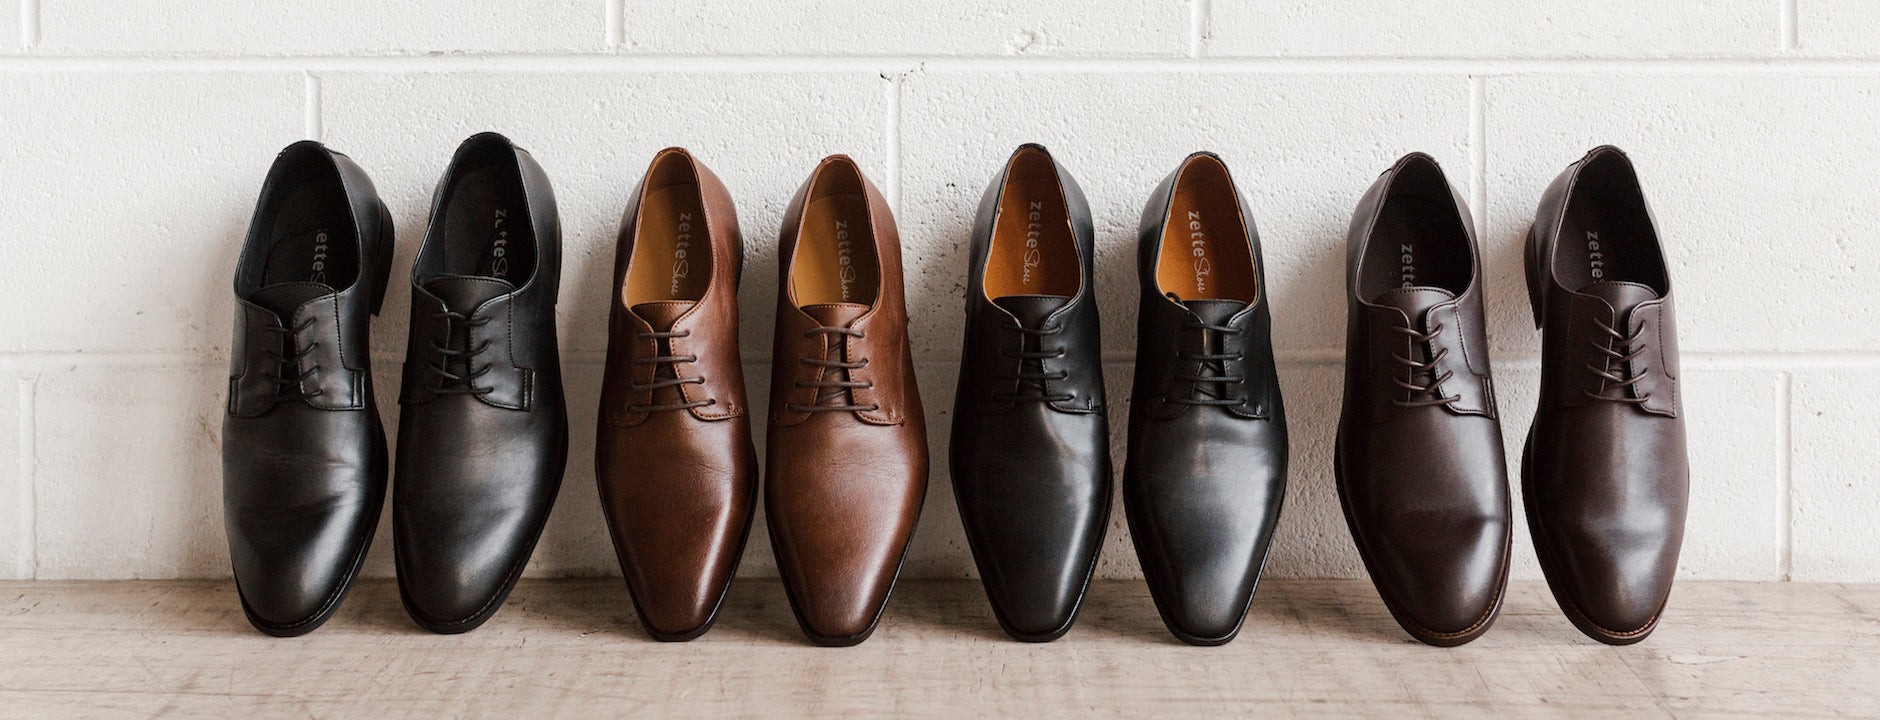 Shop men's vegan formal shoes in Australia. Non-leather work shoes for men.